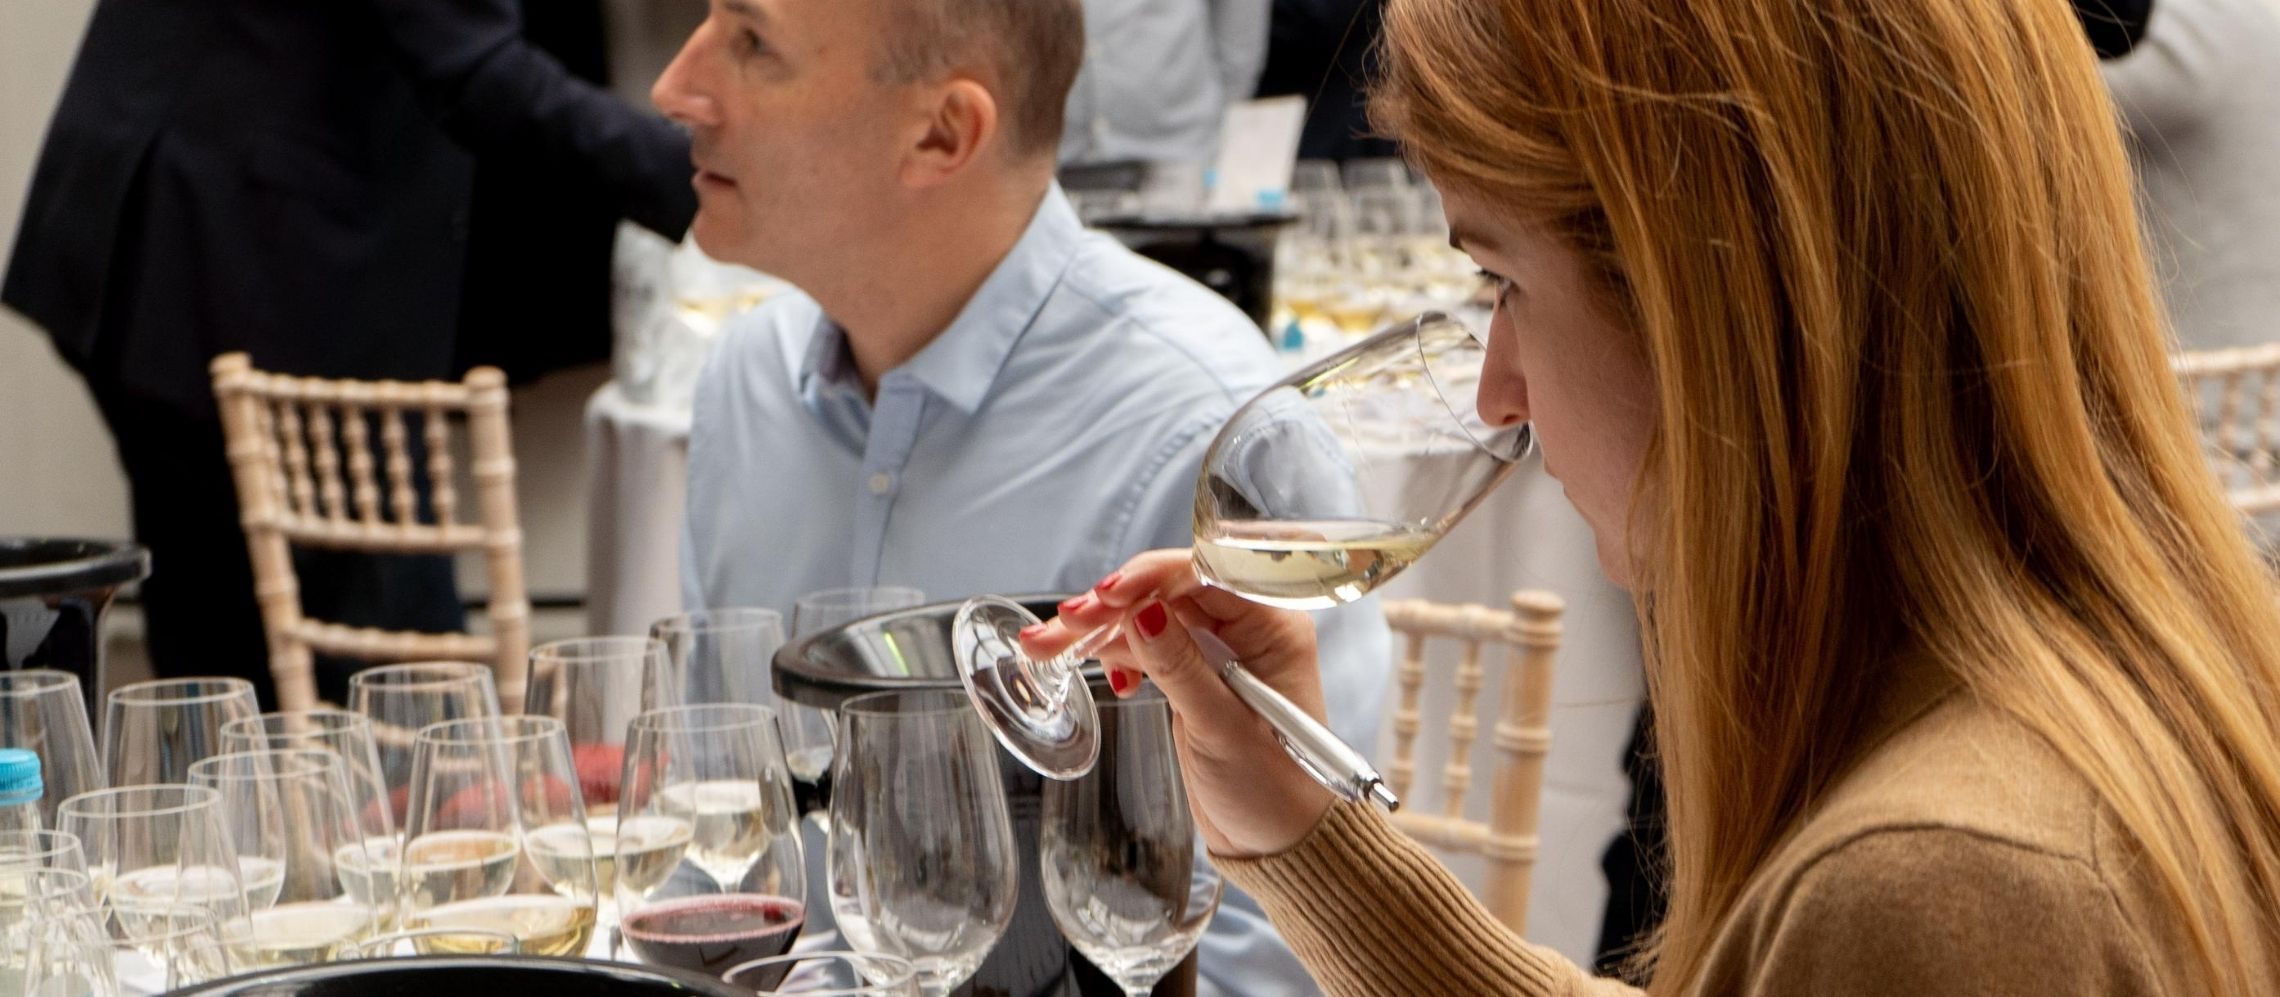 Photo for: Entries for the 2021 London Wine Competition Are Now Open